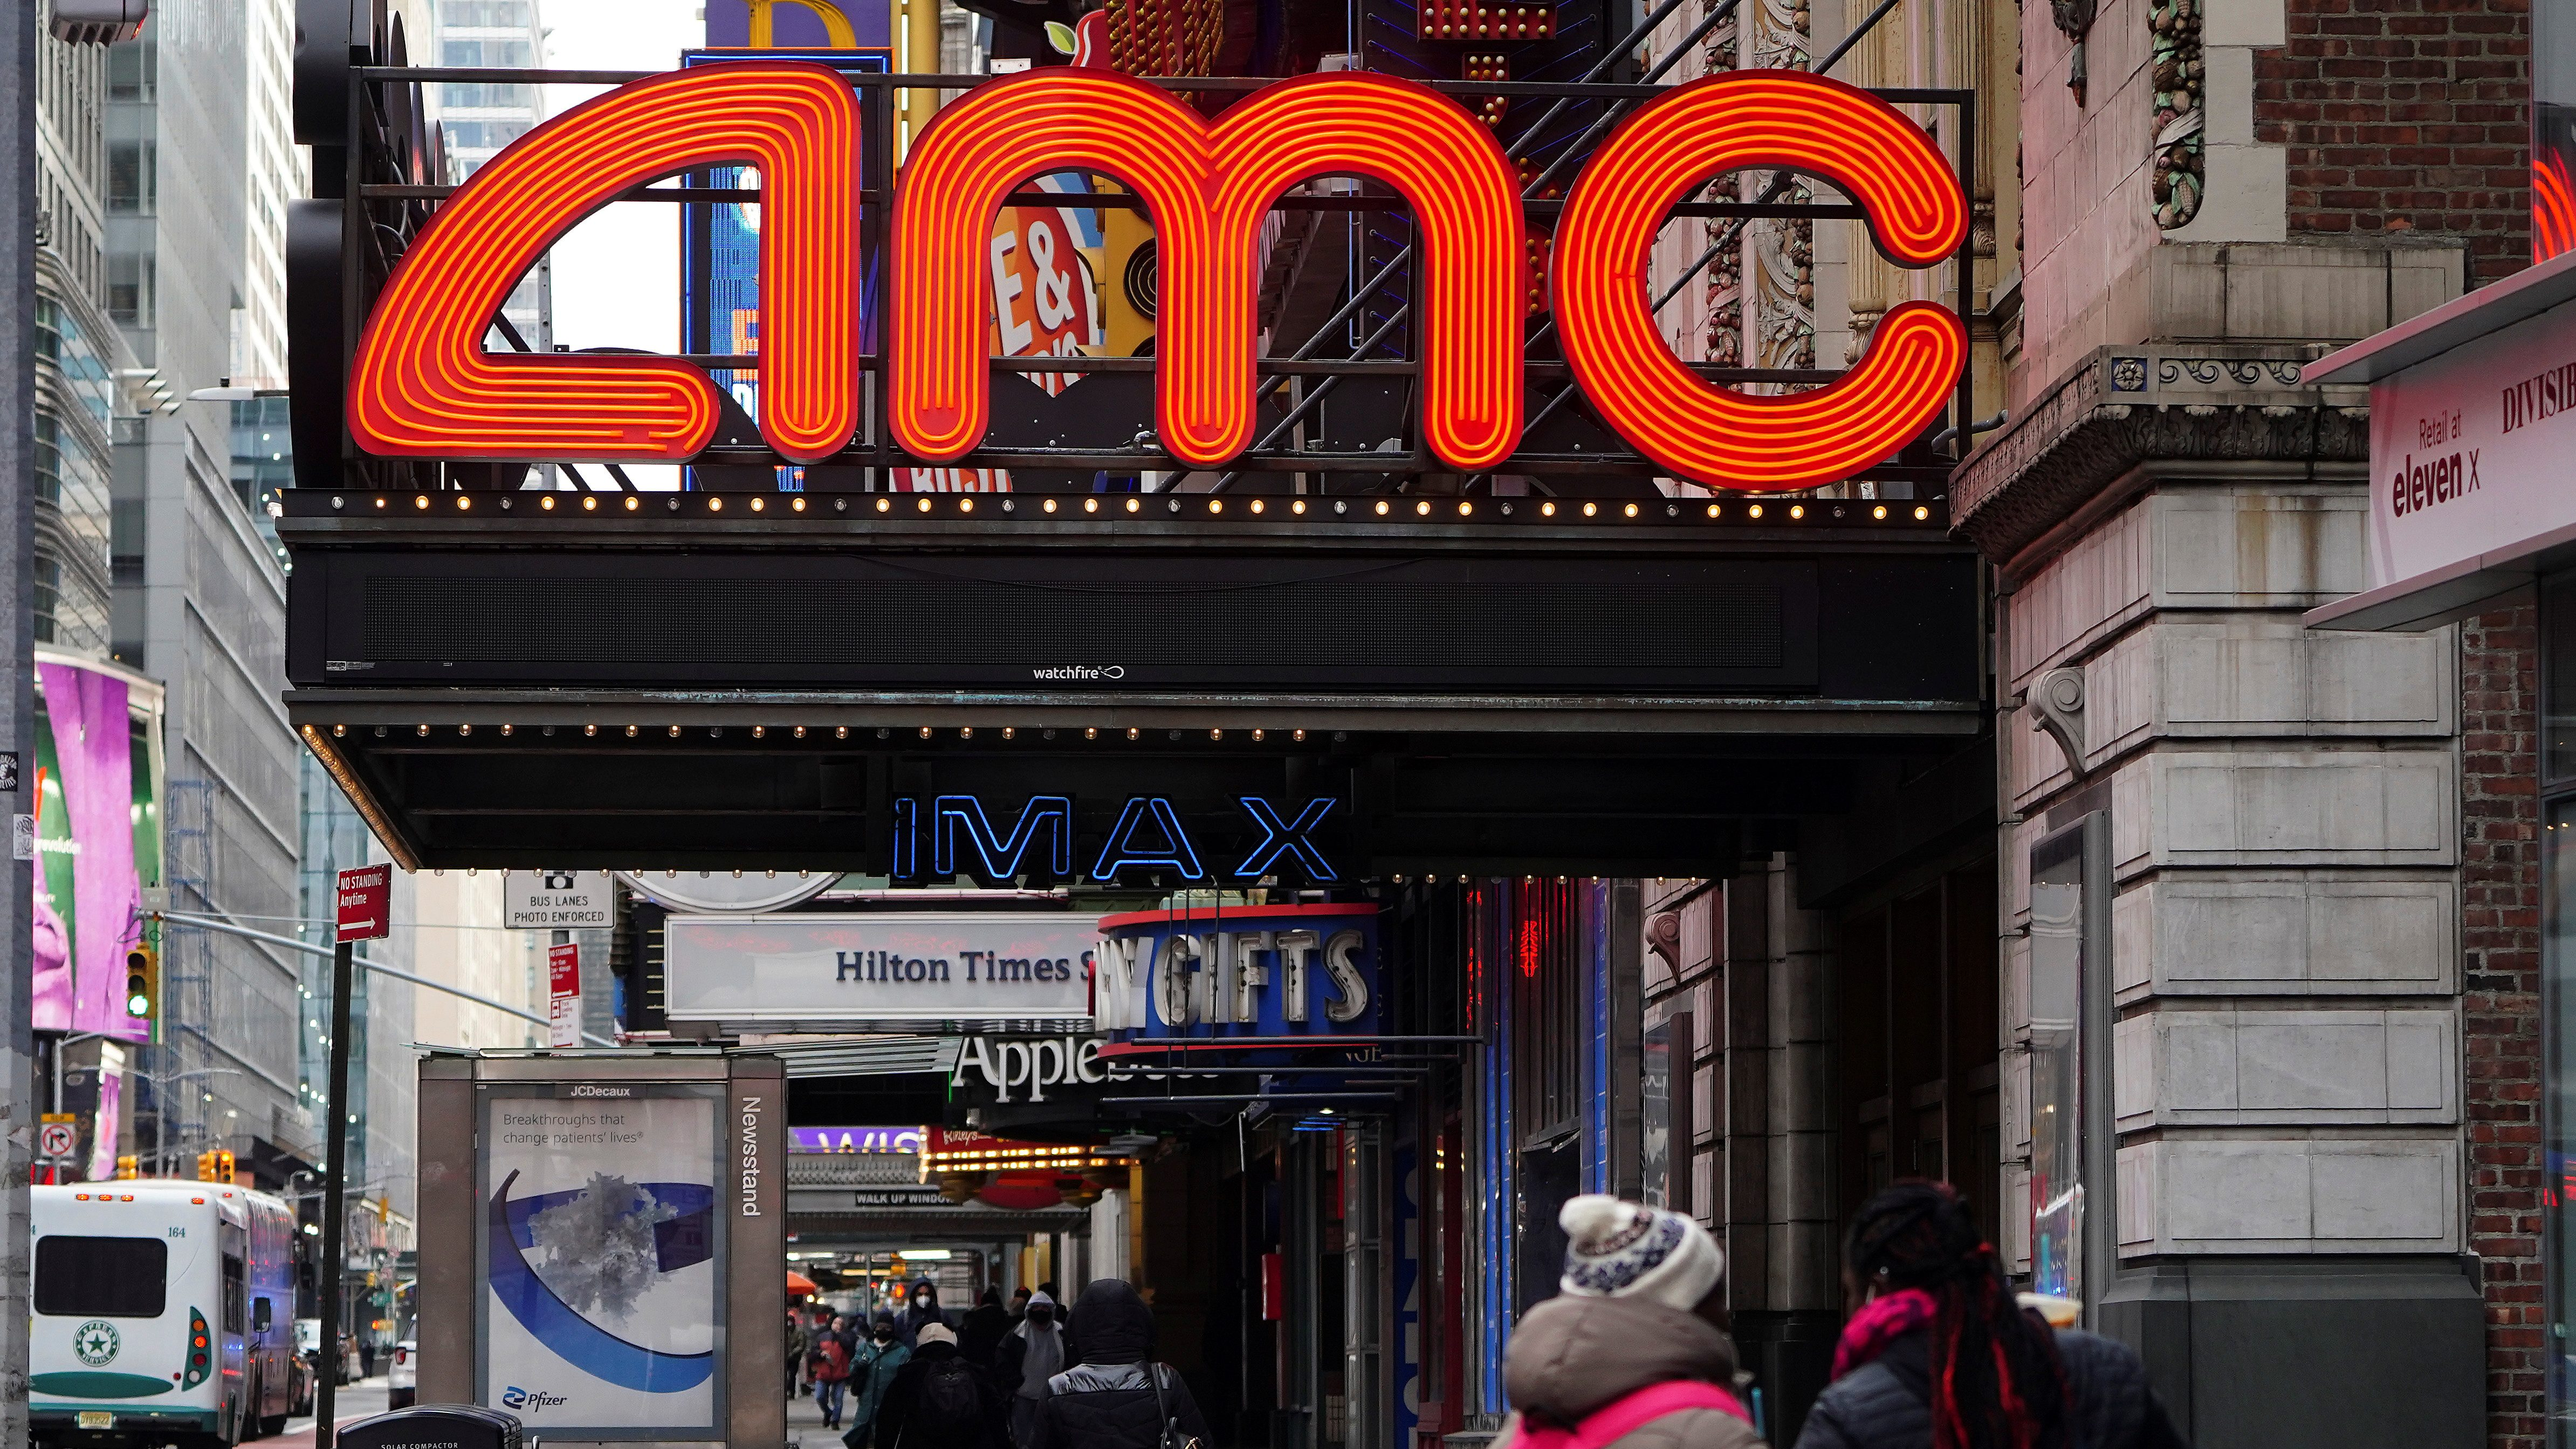 The stock market frenzy is giving AMC Theatres a new lease on life